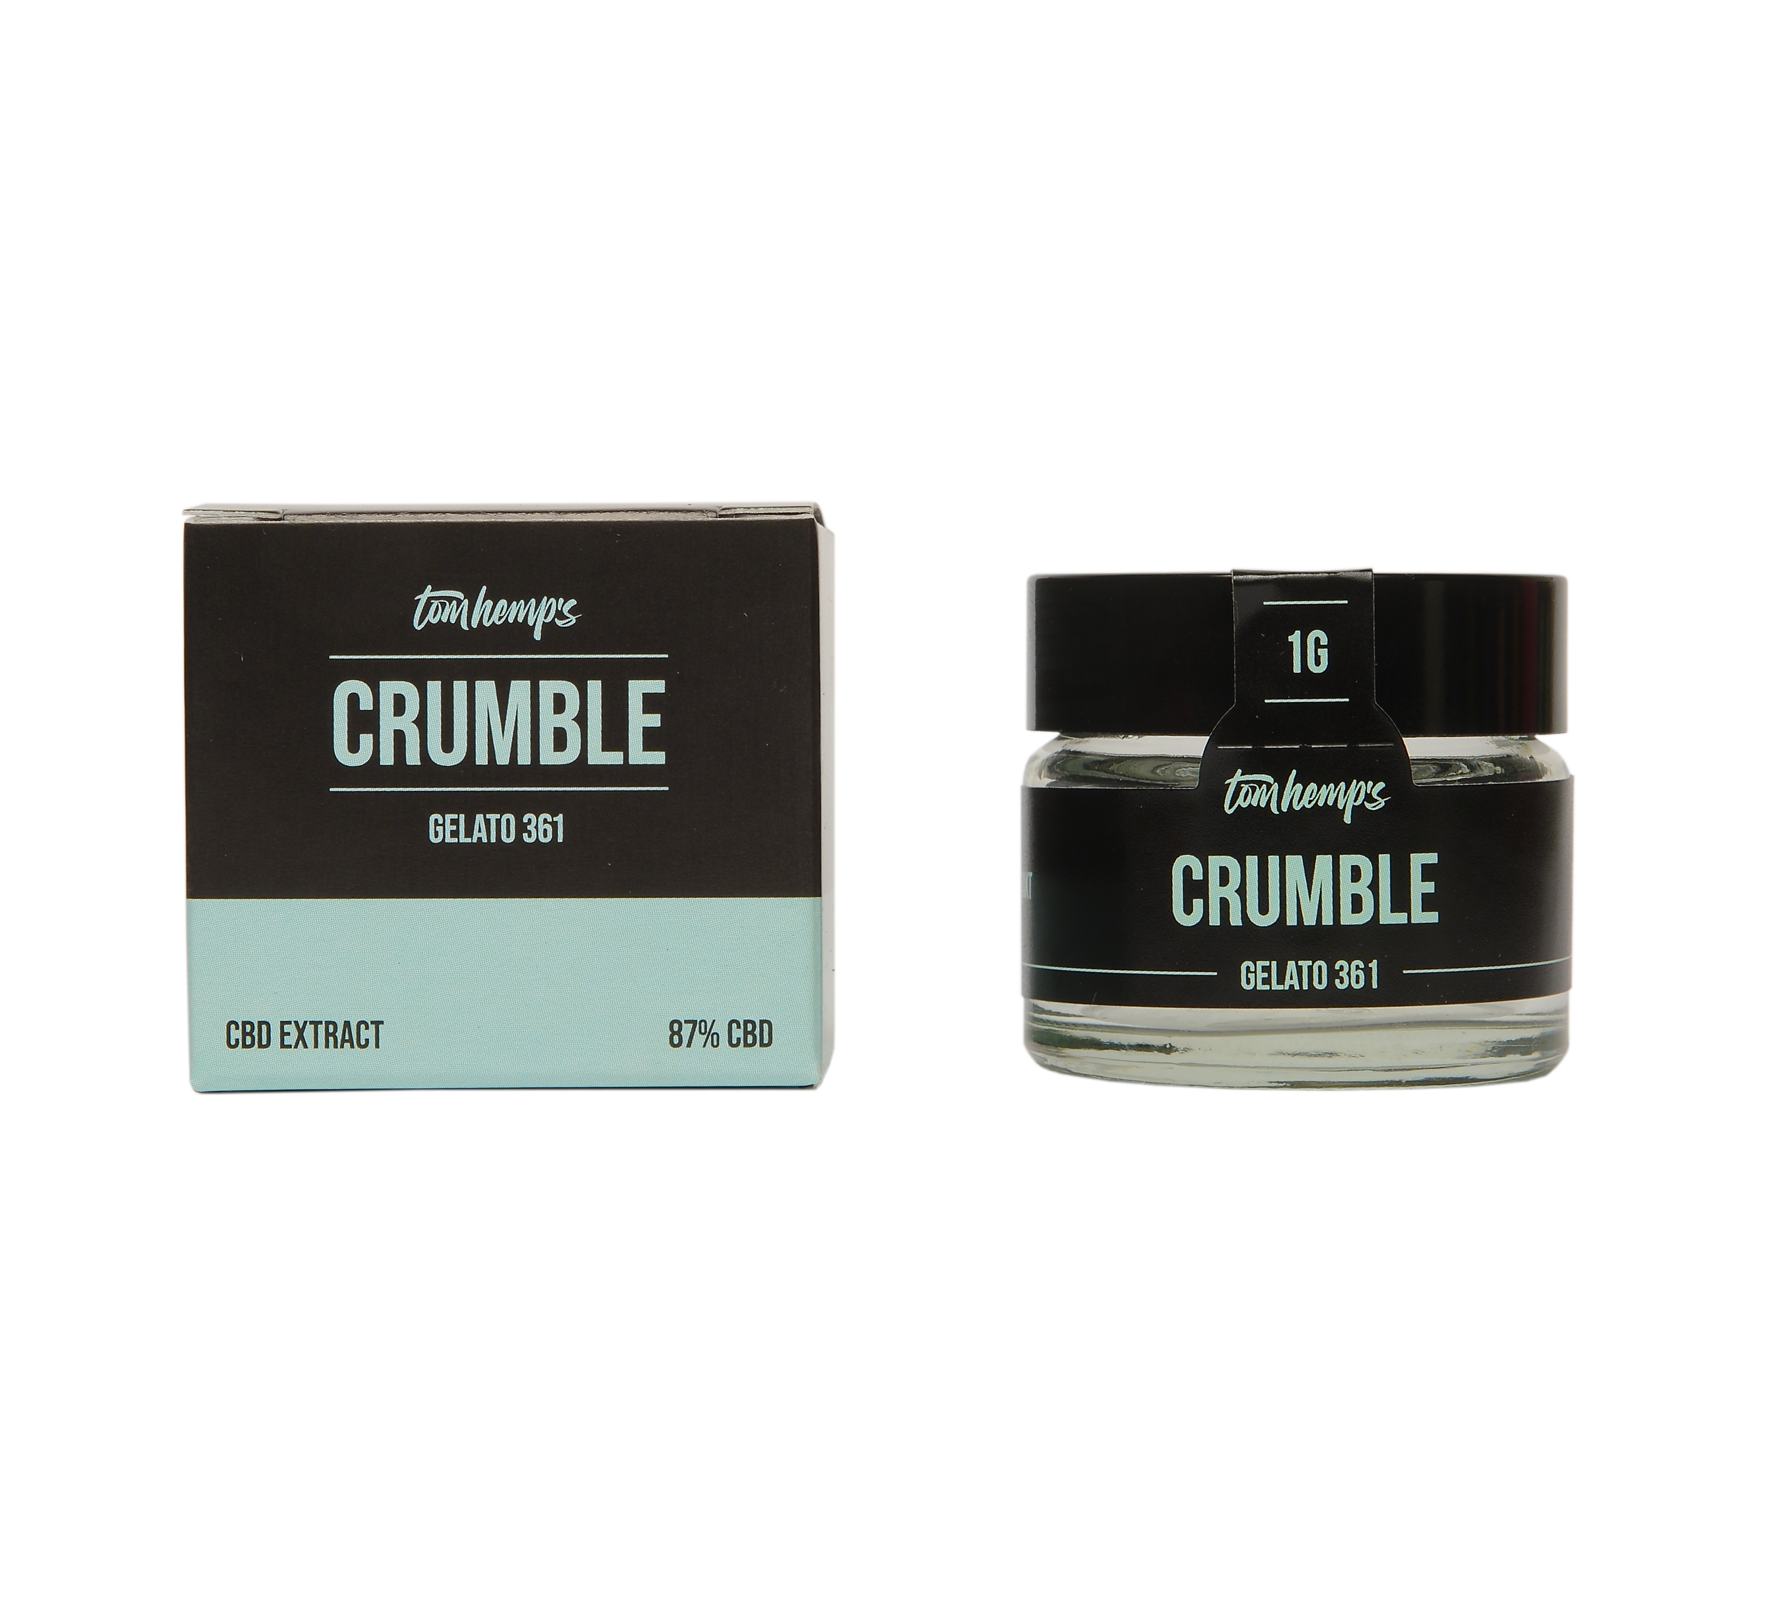 Tom_Hemps_product_well_being_crumble_gelato361